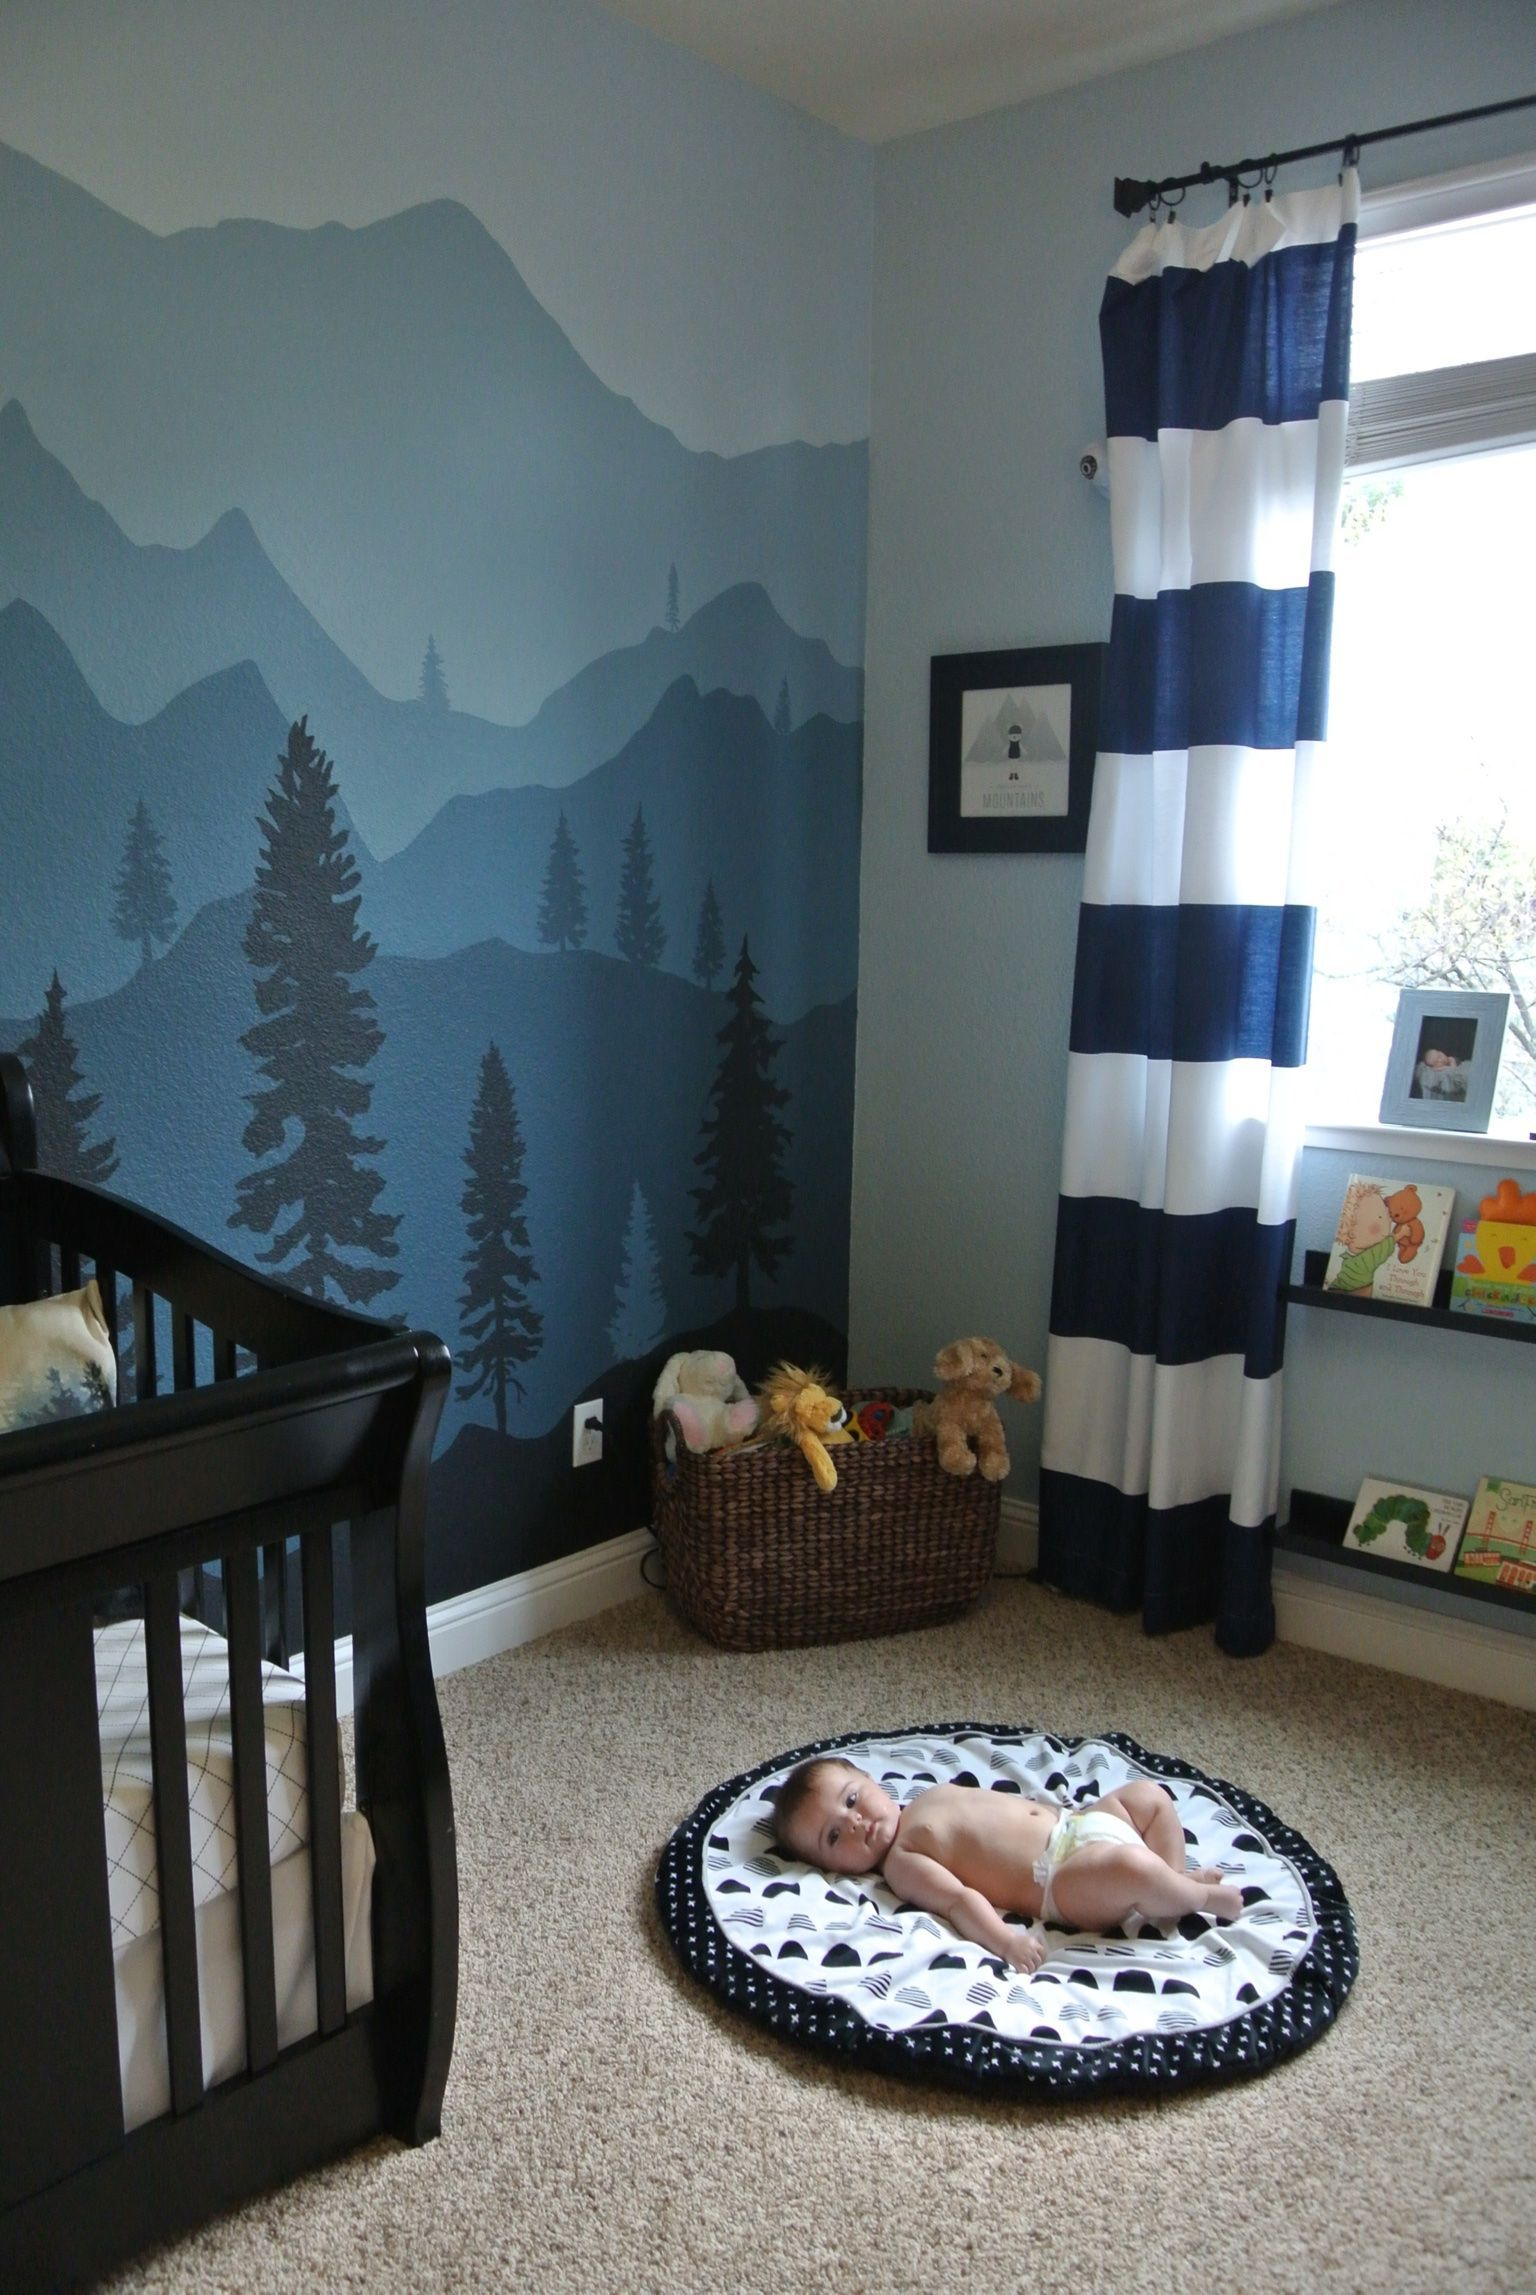 10 Baby Bedroom Ideas Boy Incredible as well as Interesting images